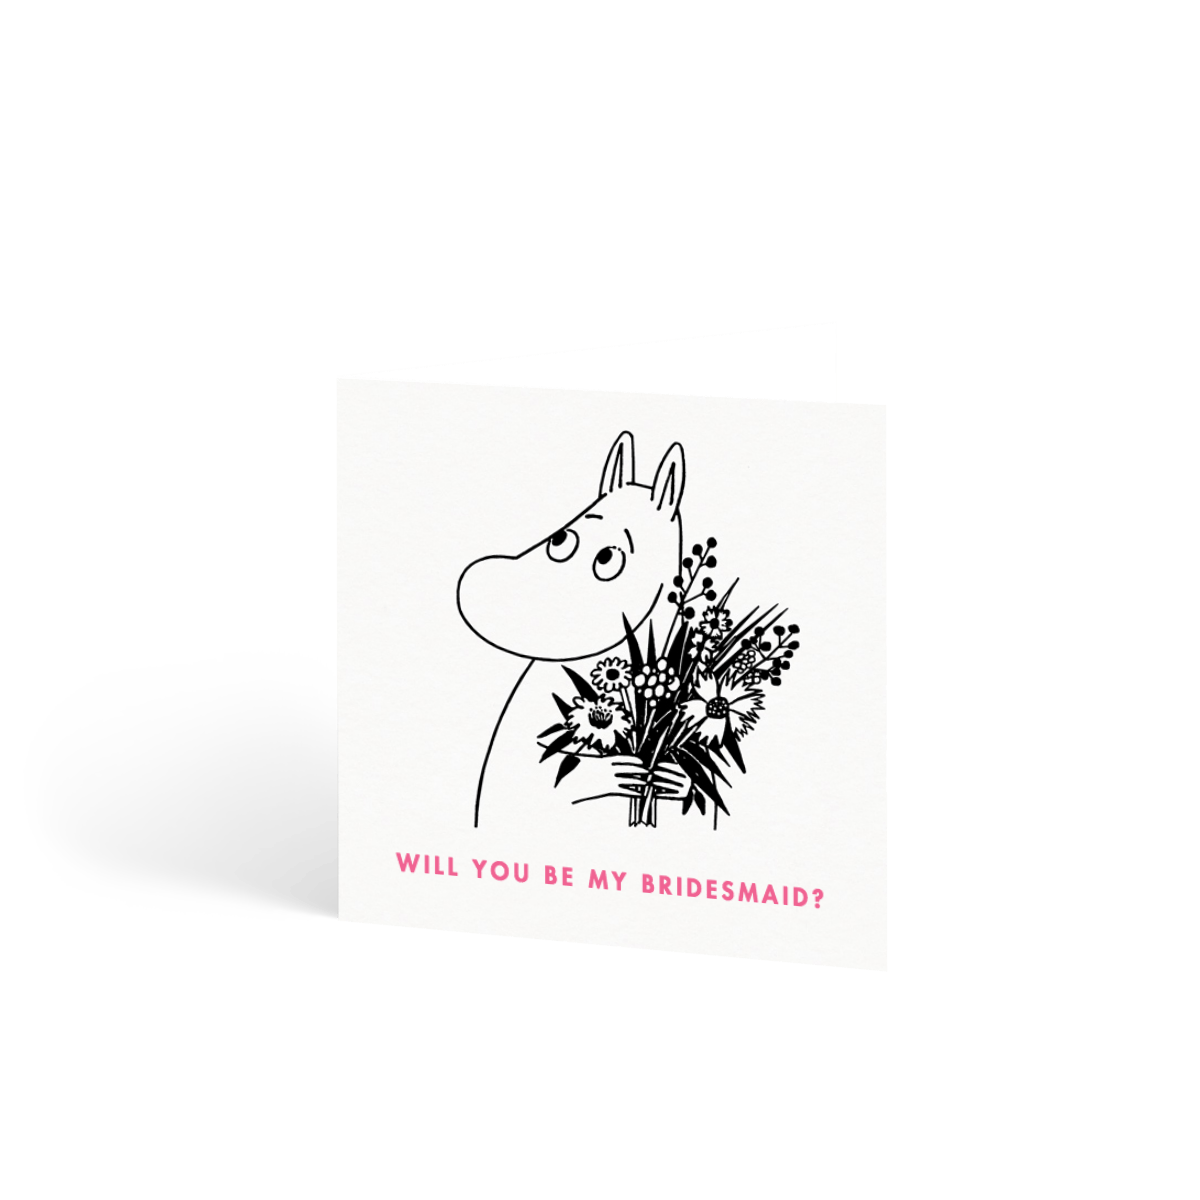 Https%3a%2f%2fwww.papier.com%2fproduct image%2f46451%2f16%2fmoomintroll with flowers 11453 front 1536664078.png?ixlib=rb 1.1